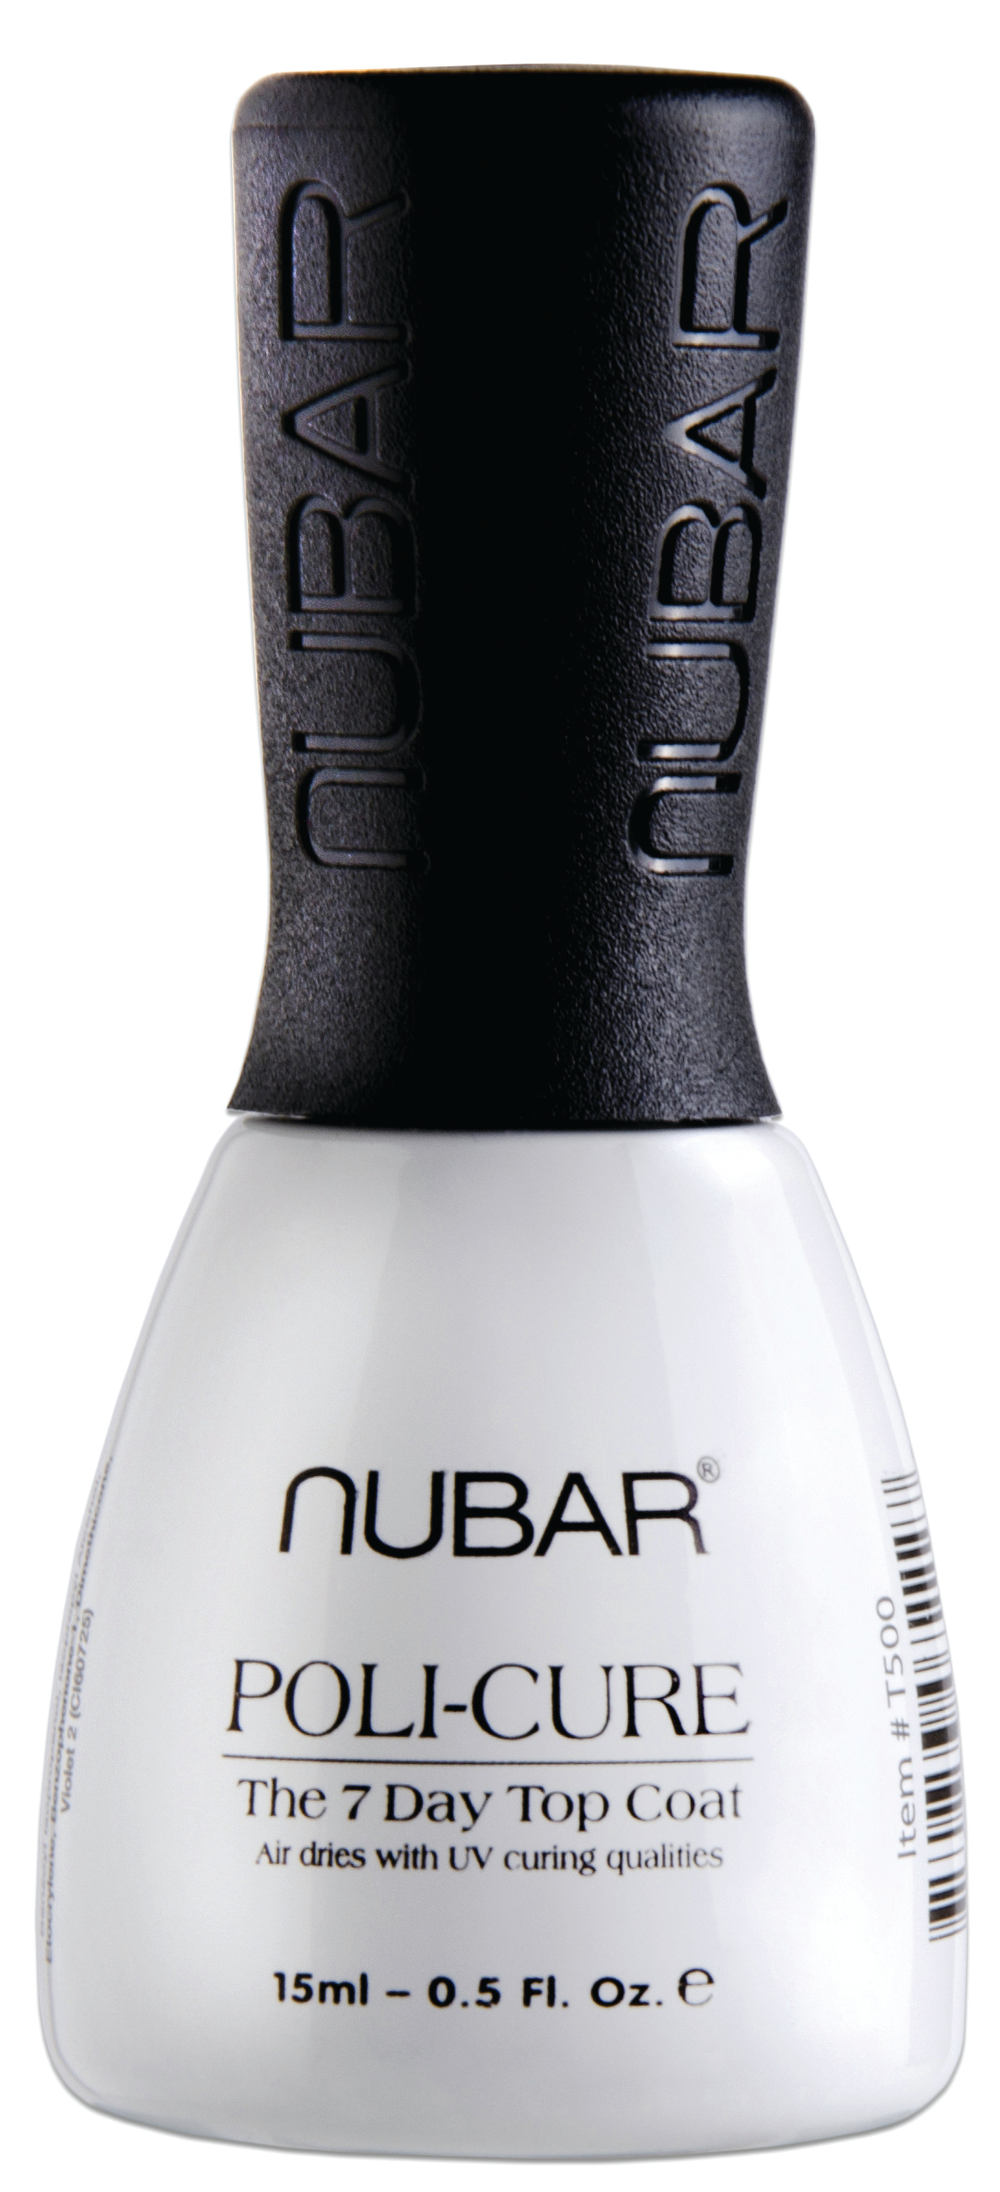 """<p>Poli-cure from <a href=""""http://bynubar.com/"""">Nuba</a>r is a brand new top coat. Poli-cure air dries with UV-curing qualities, so there is no need for a light. Add this top coat on to any polish color for a shine that will last 7-10 days and takes only three minutes to dry. Use regular nail polish remover to&nbsp; take top coat off.</p>"""